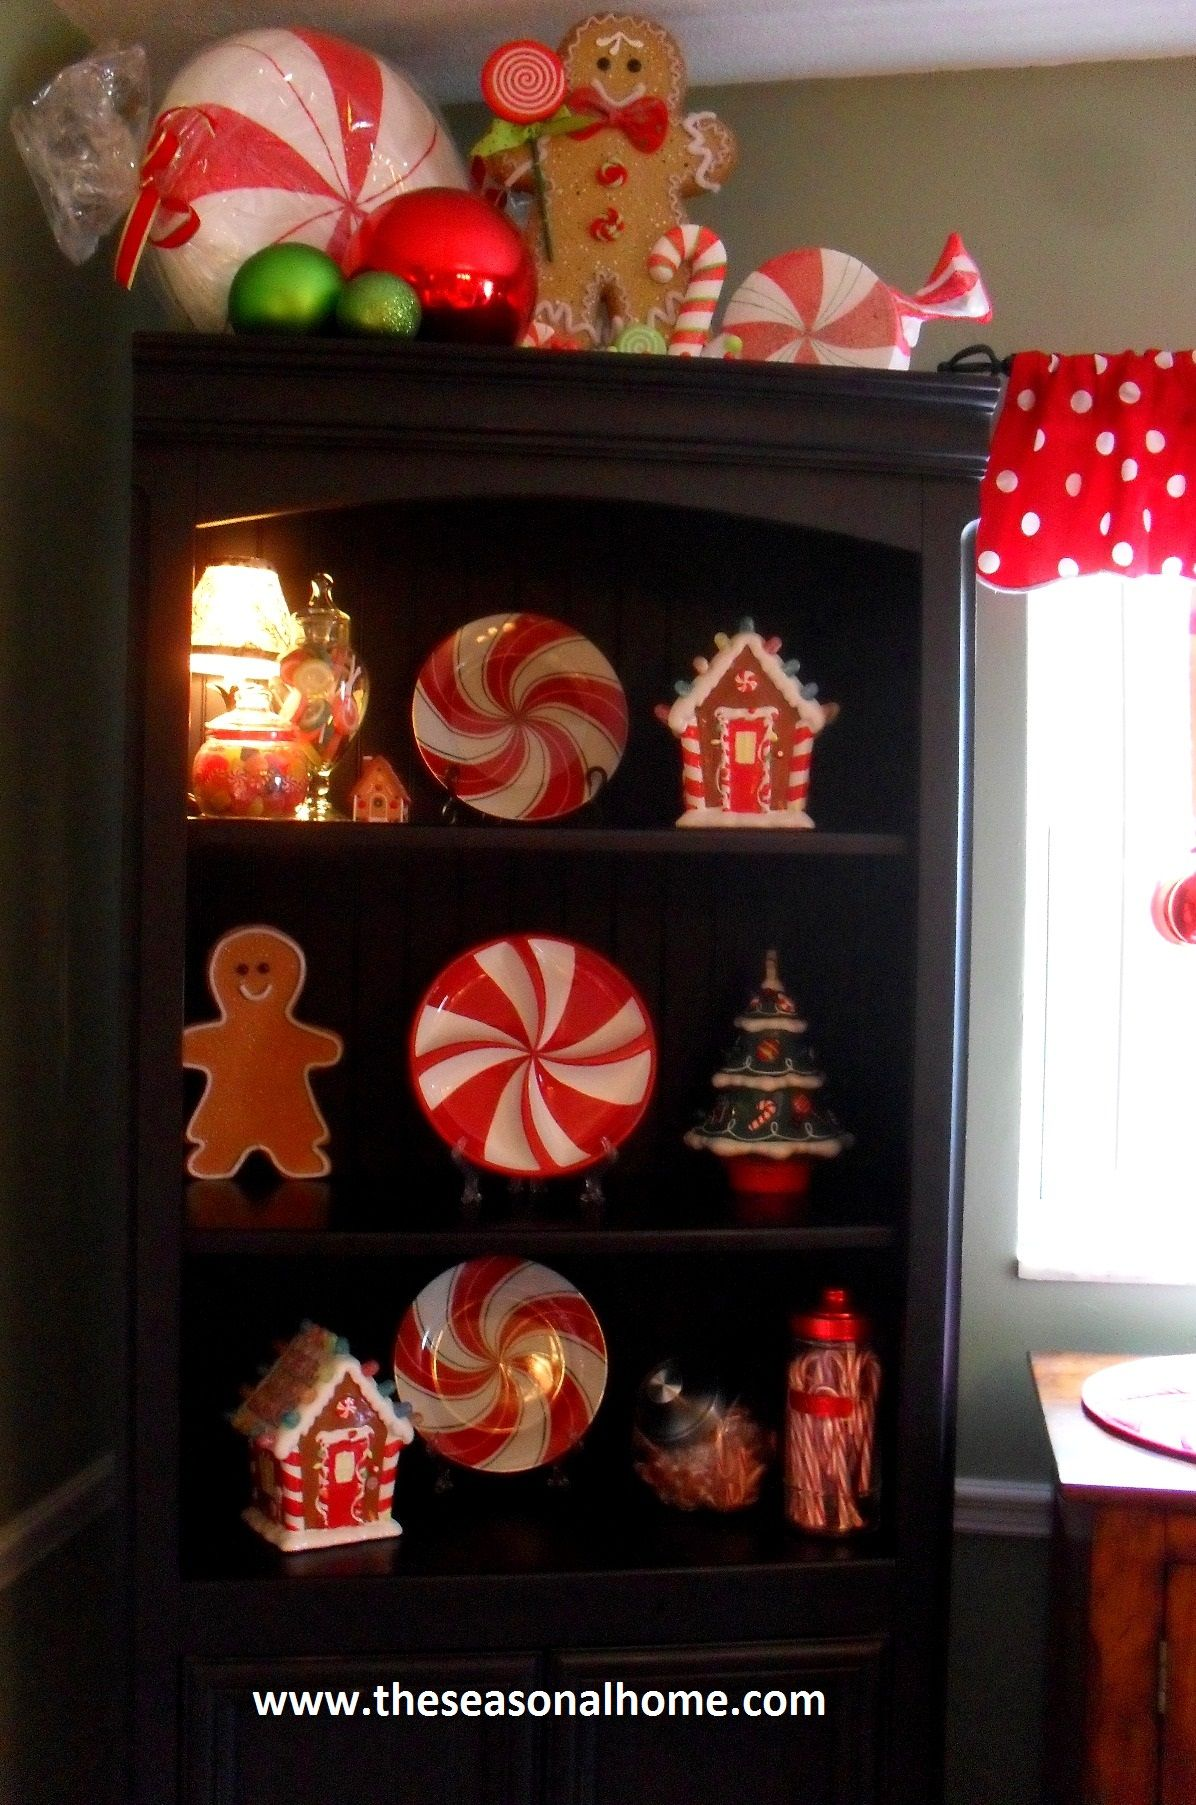 Kristen's Creations: ~~Our Gingerbread Kitchen~~